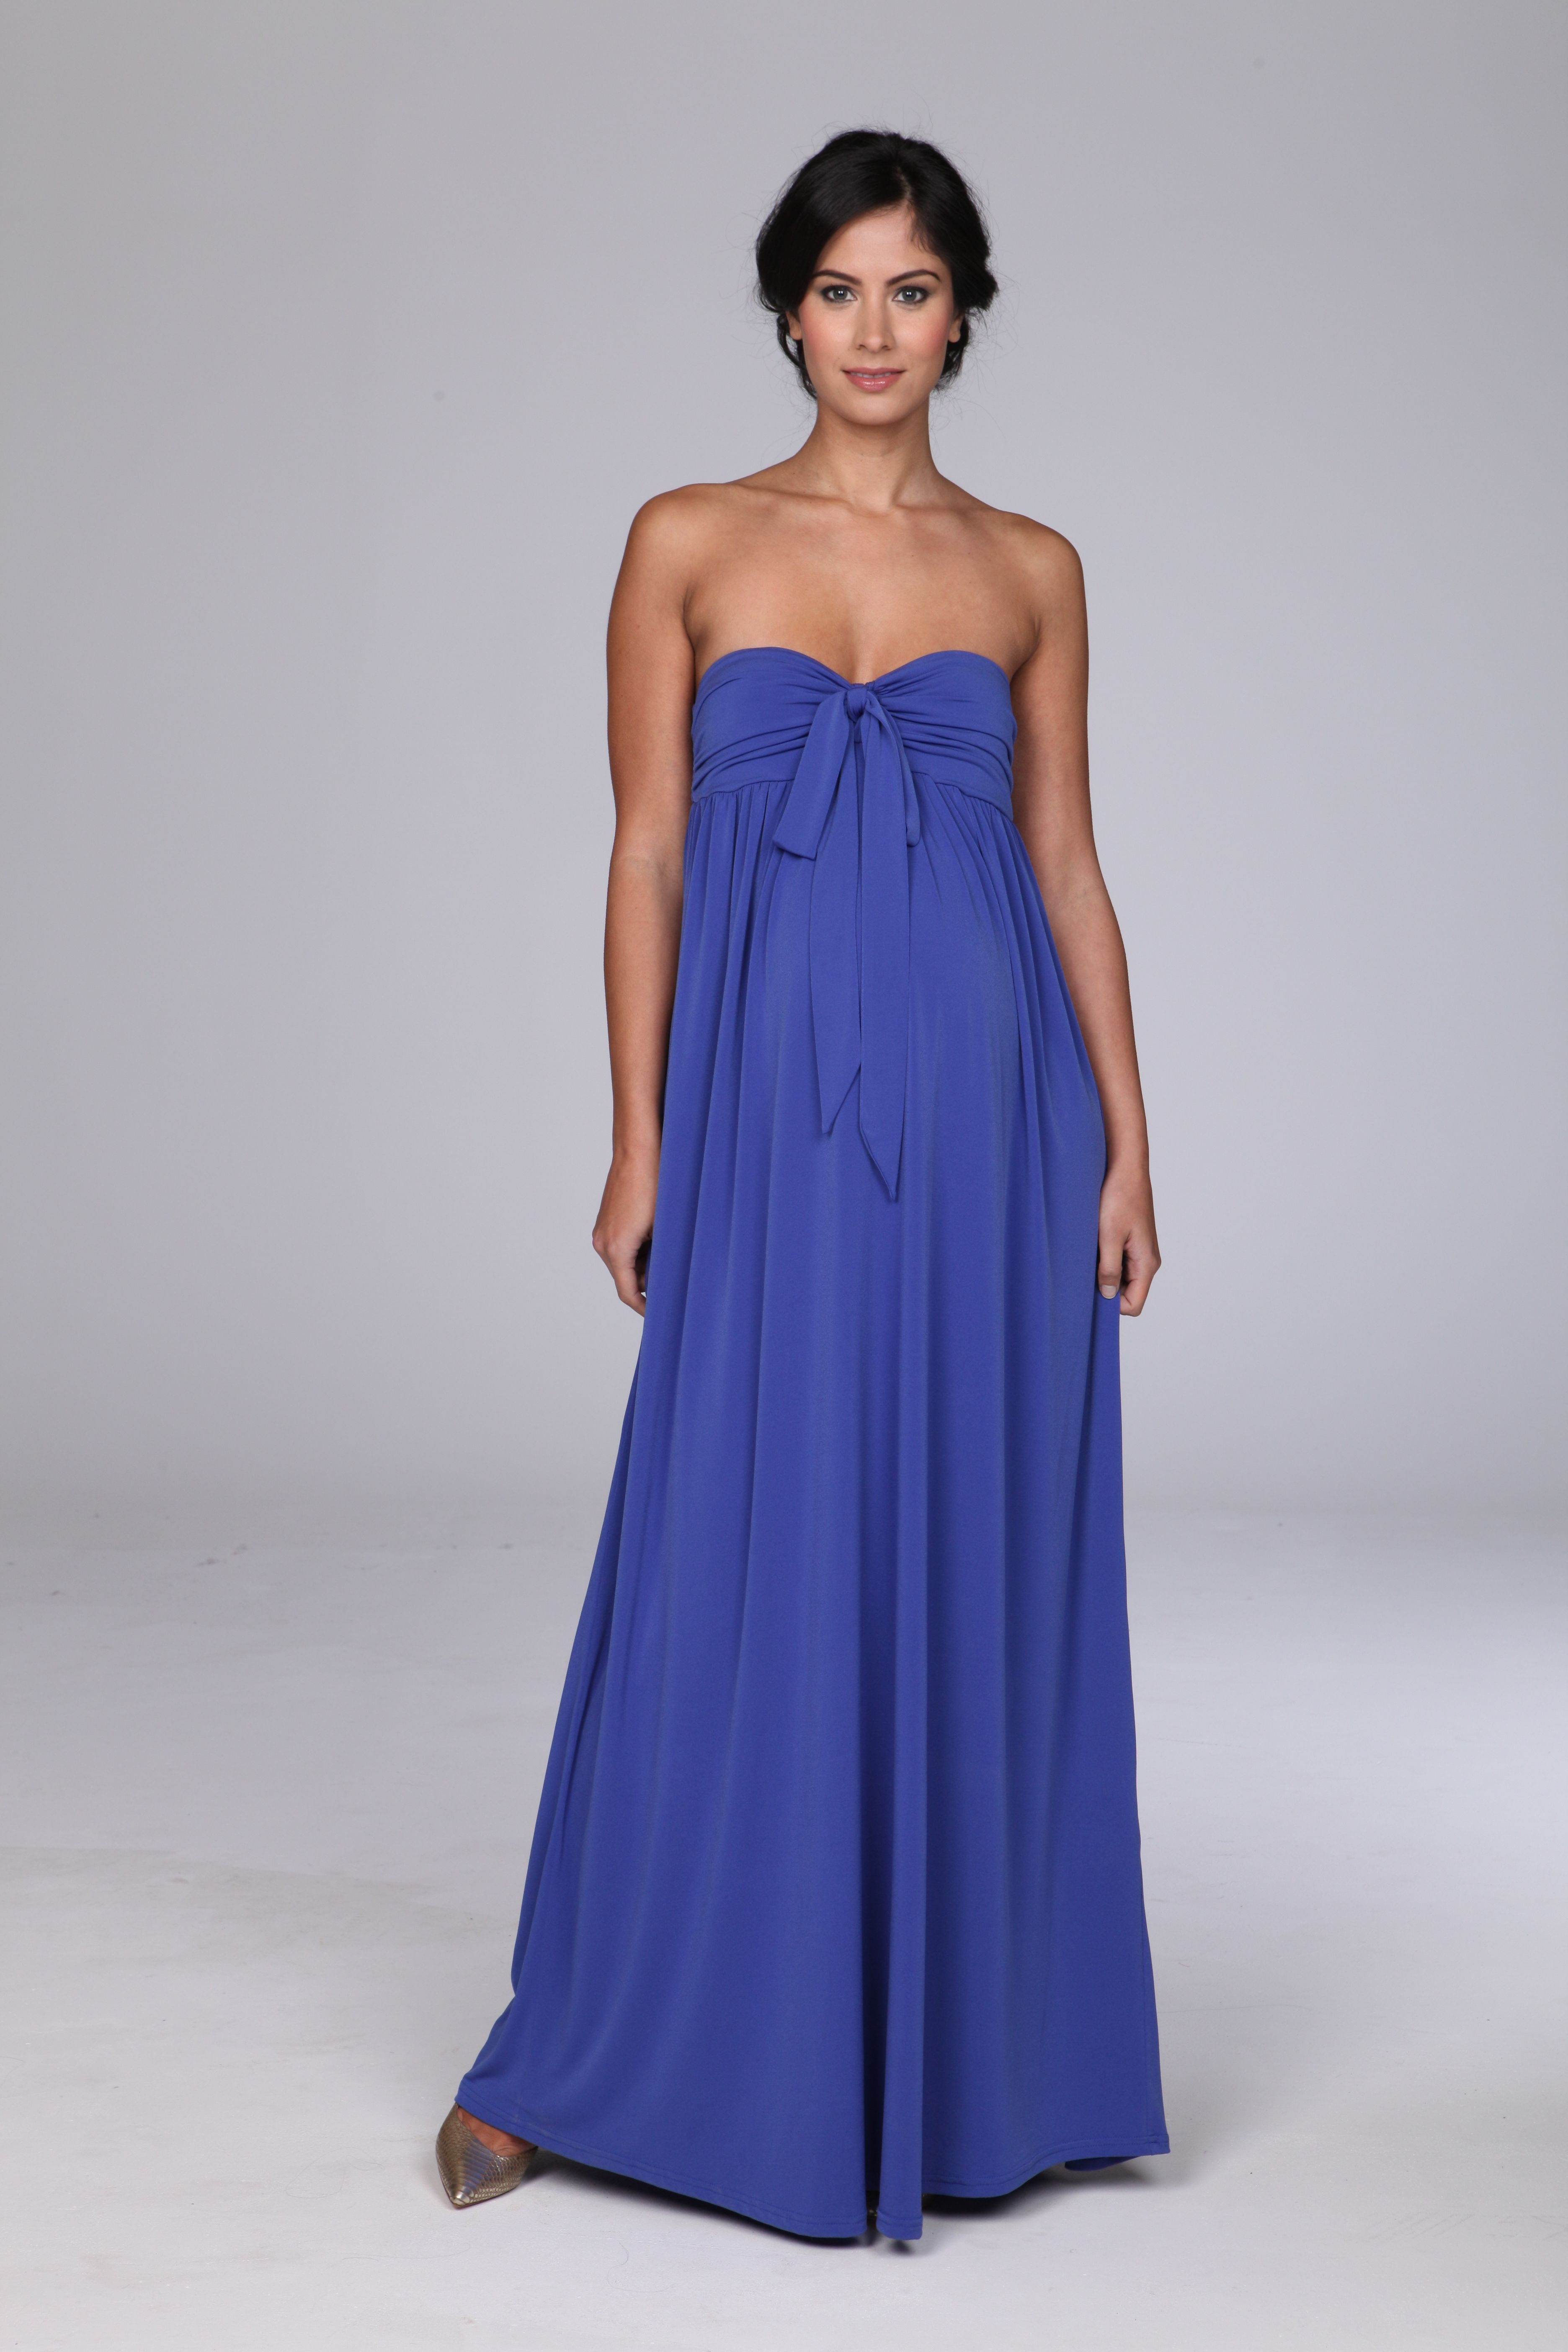 Beautiful blue strapless gathered maternity maxi dress bump it beautiful blue maxi maternity dress ideal for wedding or formal occasion wear shop broody maternity wear for elegant and stunning formal occasion wear ombrellifo Choice Image